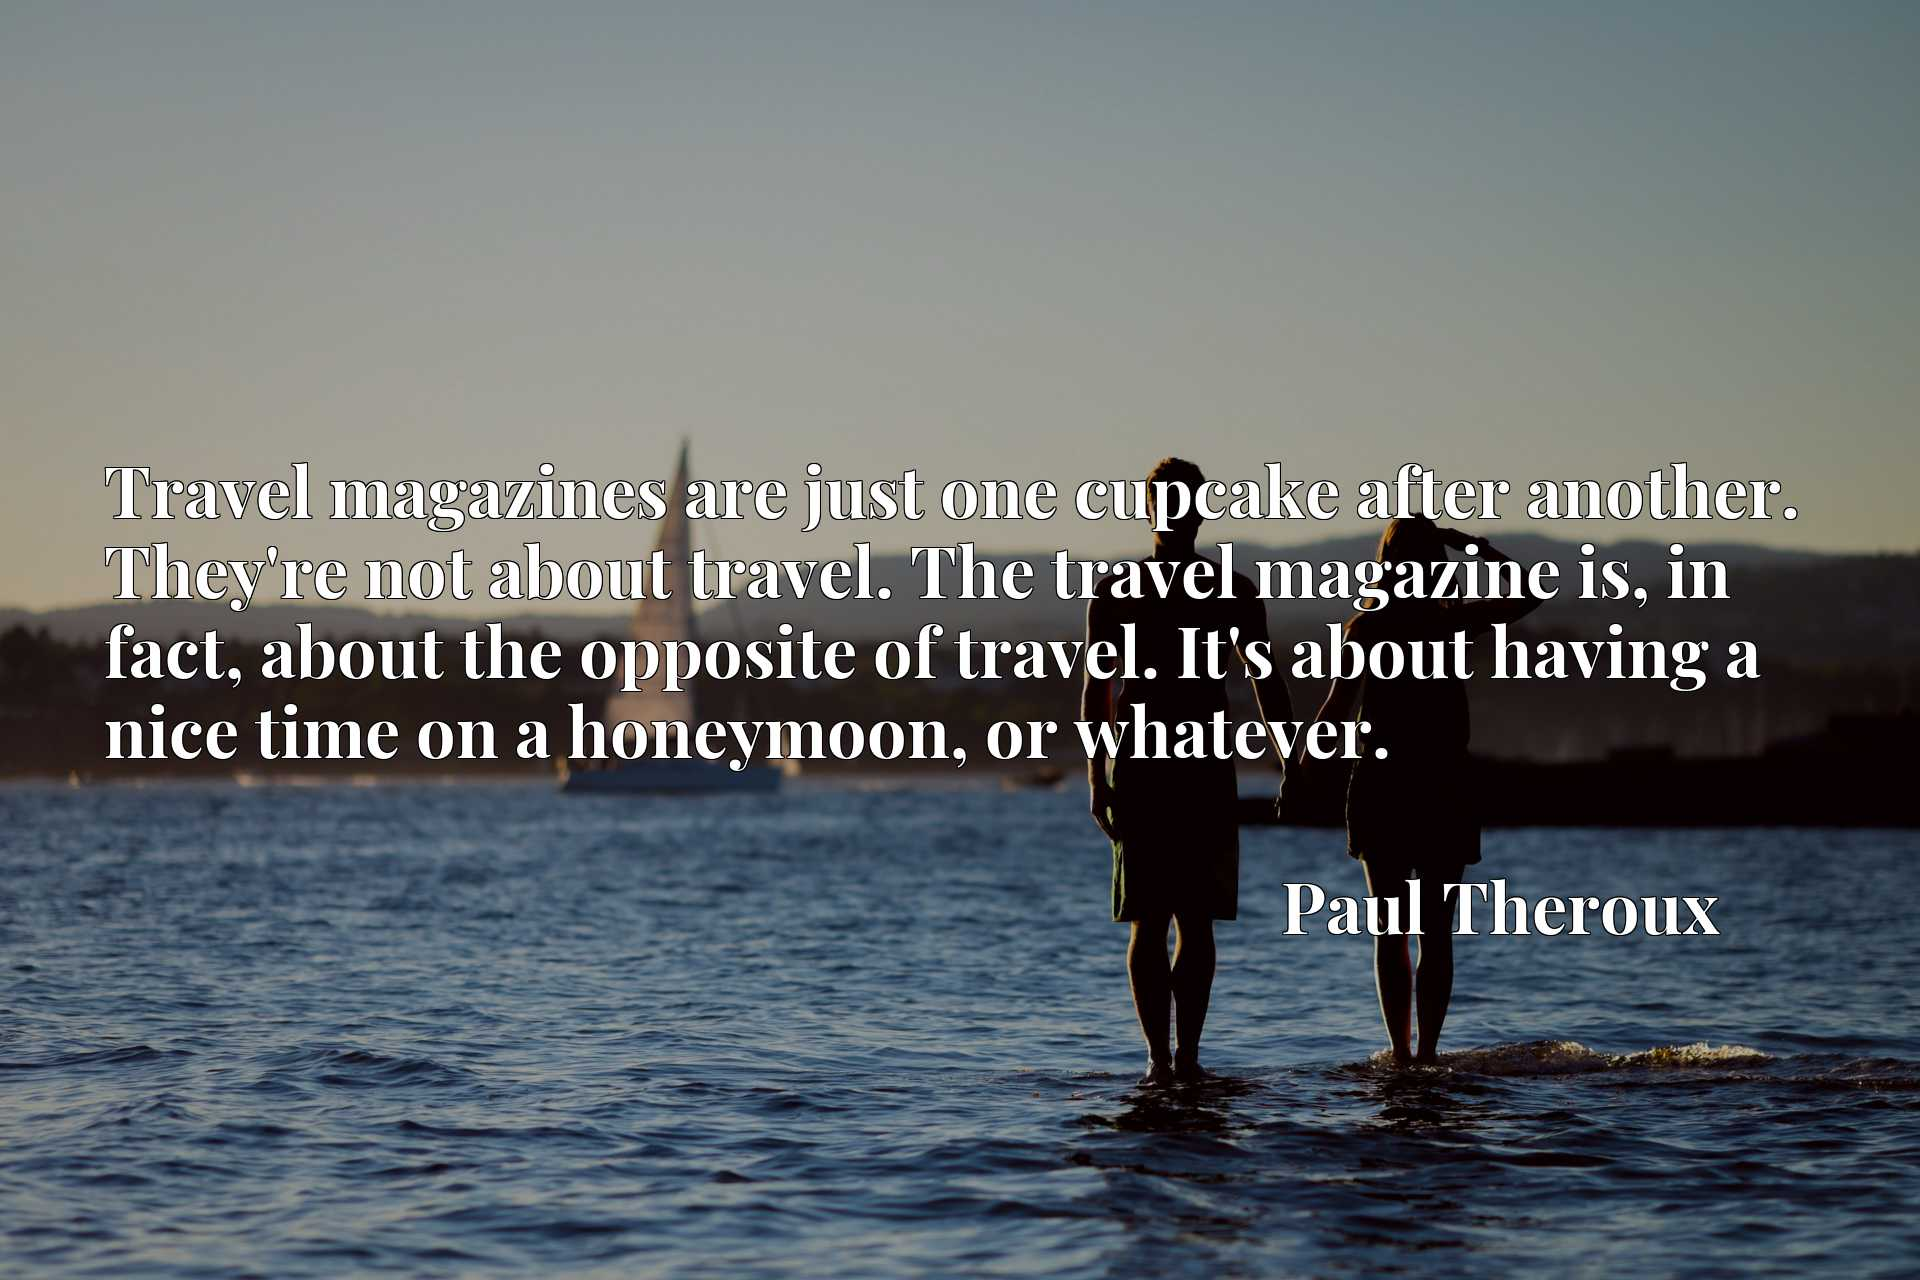 Travel magazines are just one cupcake after another. They're not about travel. The travel magazine is, in fact, about the opposite of travel. It's about having a nice time on a honeymoon, or whatever.